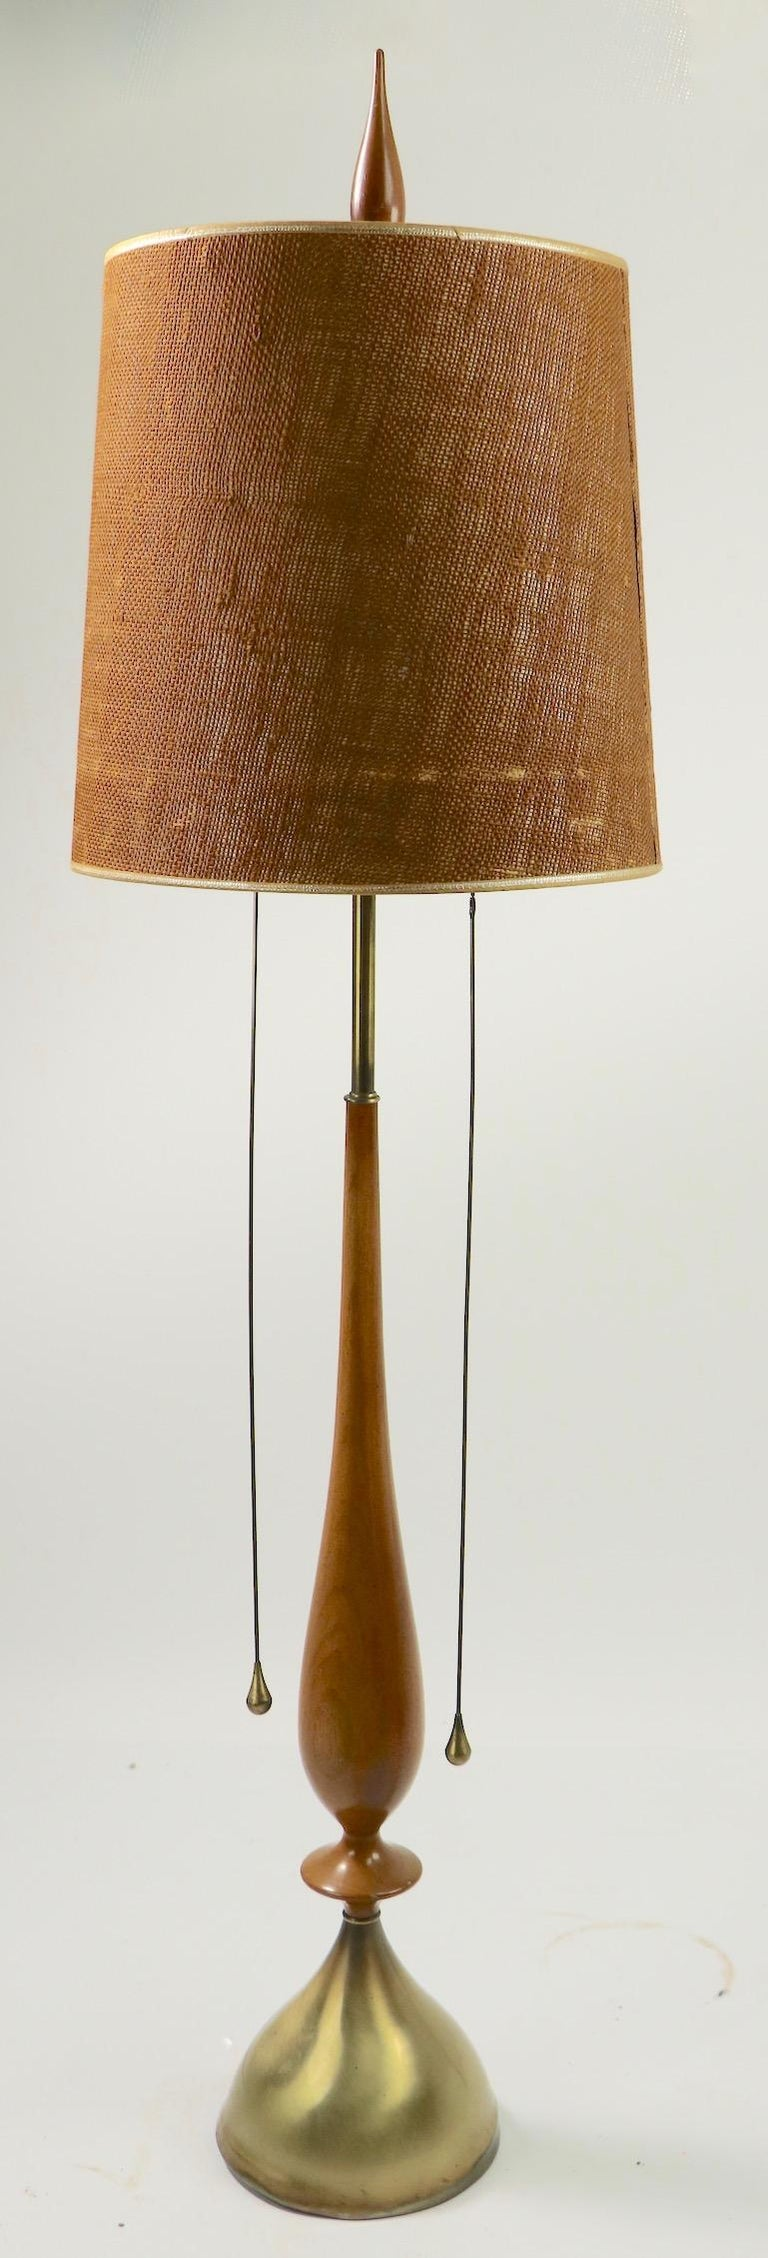 Tony Paul for Westwood Industries Mid Century Table Lamp For Sale 3